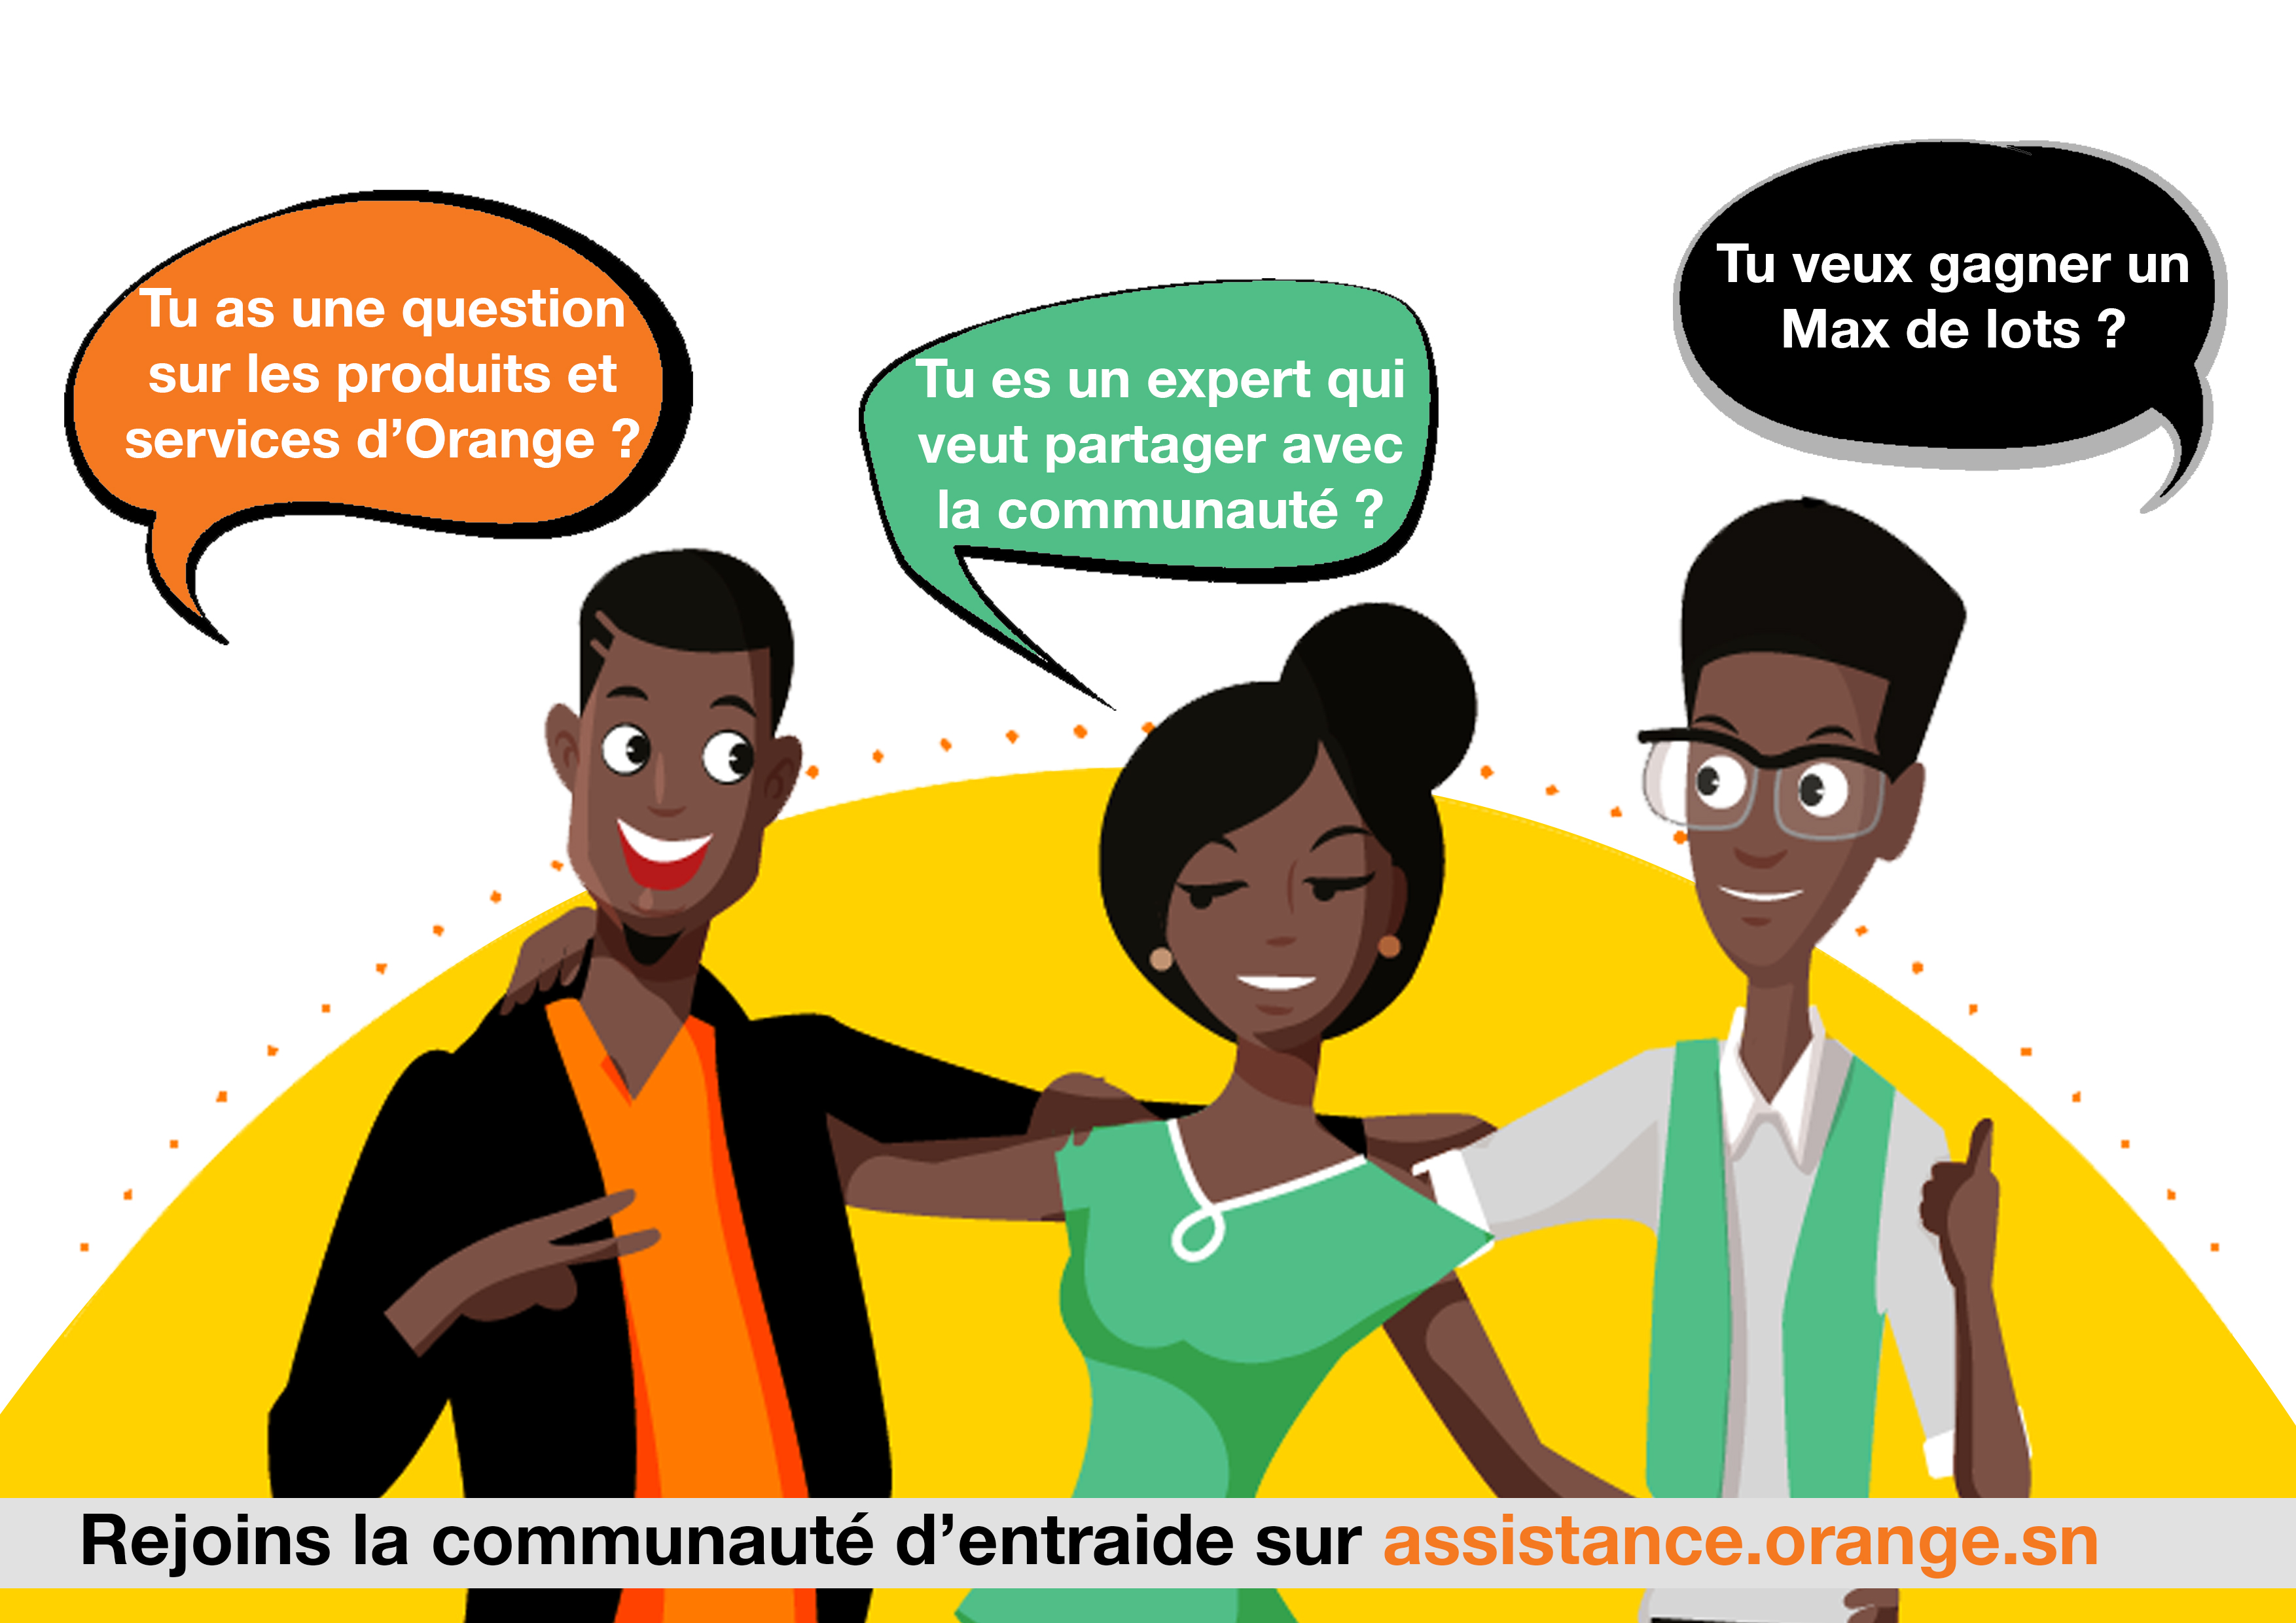 Rejoins la communauté Orange.JPG